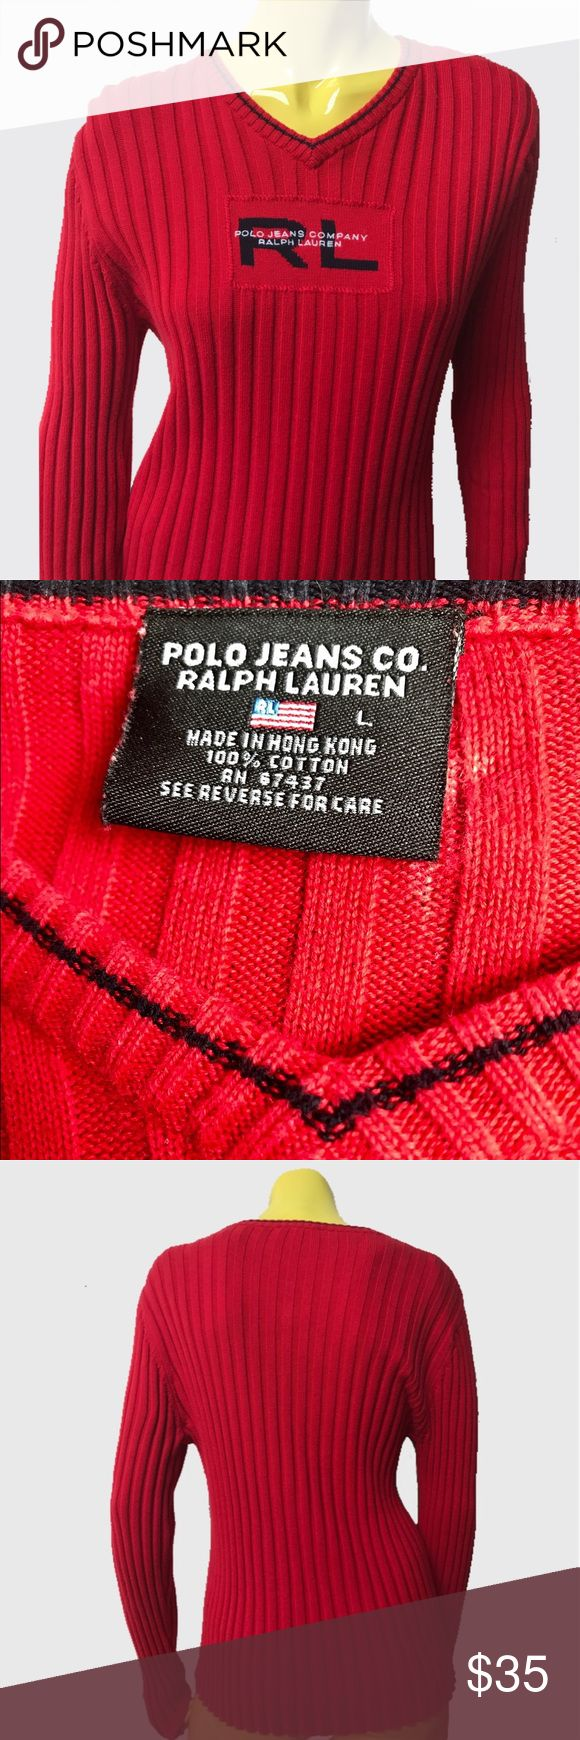 "• 🐎 VTG 90s Polo Jeans Ralph Lauren Sweater 💯• Classic ® RL ® spell out, soft stretchy sweater with not a flaw to note 🔺✔️✨   • Polo Jeans Co. Ralph Lauren • L • 💯% Cotton • Made in Hong Kong 🇭🇰 •   • Length: 22"" • • Sleeve: 24"" • • Bust: 19"" •   . • * • . • ✶ • . • * • .  #vintage #vtg #retro #1990s #1990 #90 #90s #ralph #lauren #polo #jeans #co #tommy #Hilfiger #logo #red #blue #american #knit #ribbed #cotton #soft #sweater #prep #sport #thrift #shop #realbazaar Ralph Lauren Sweaters"